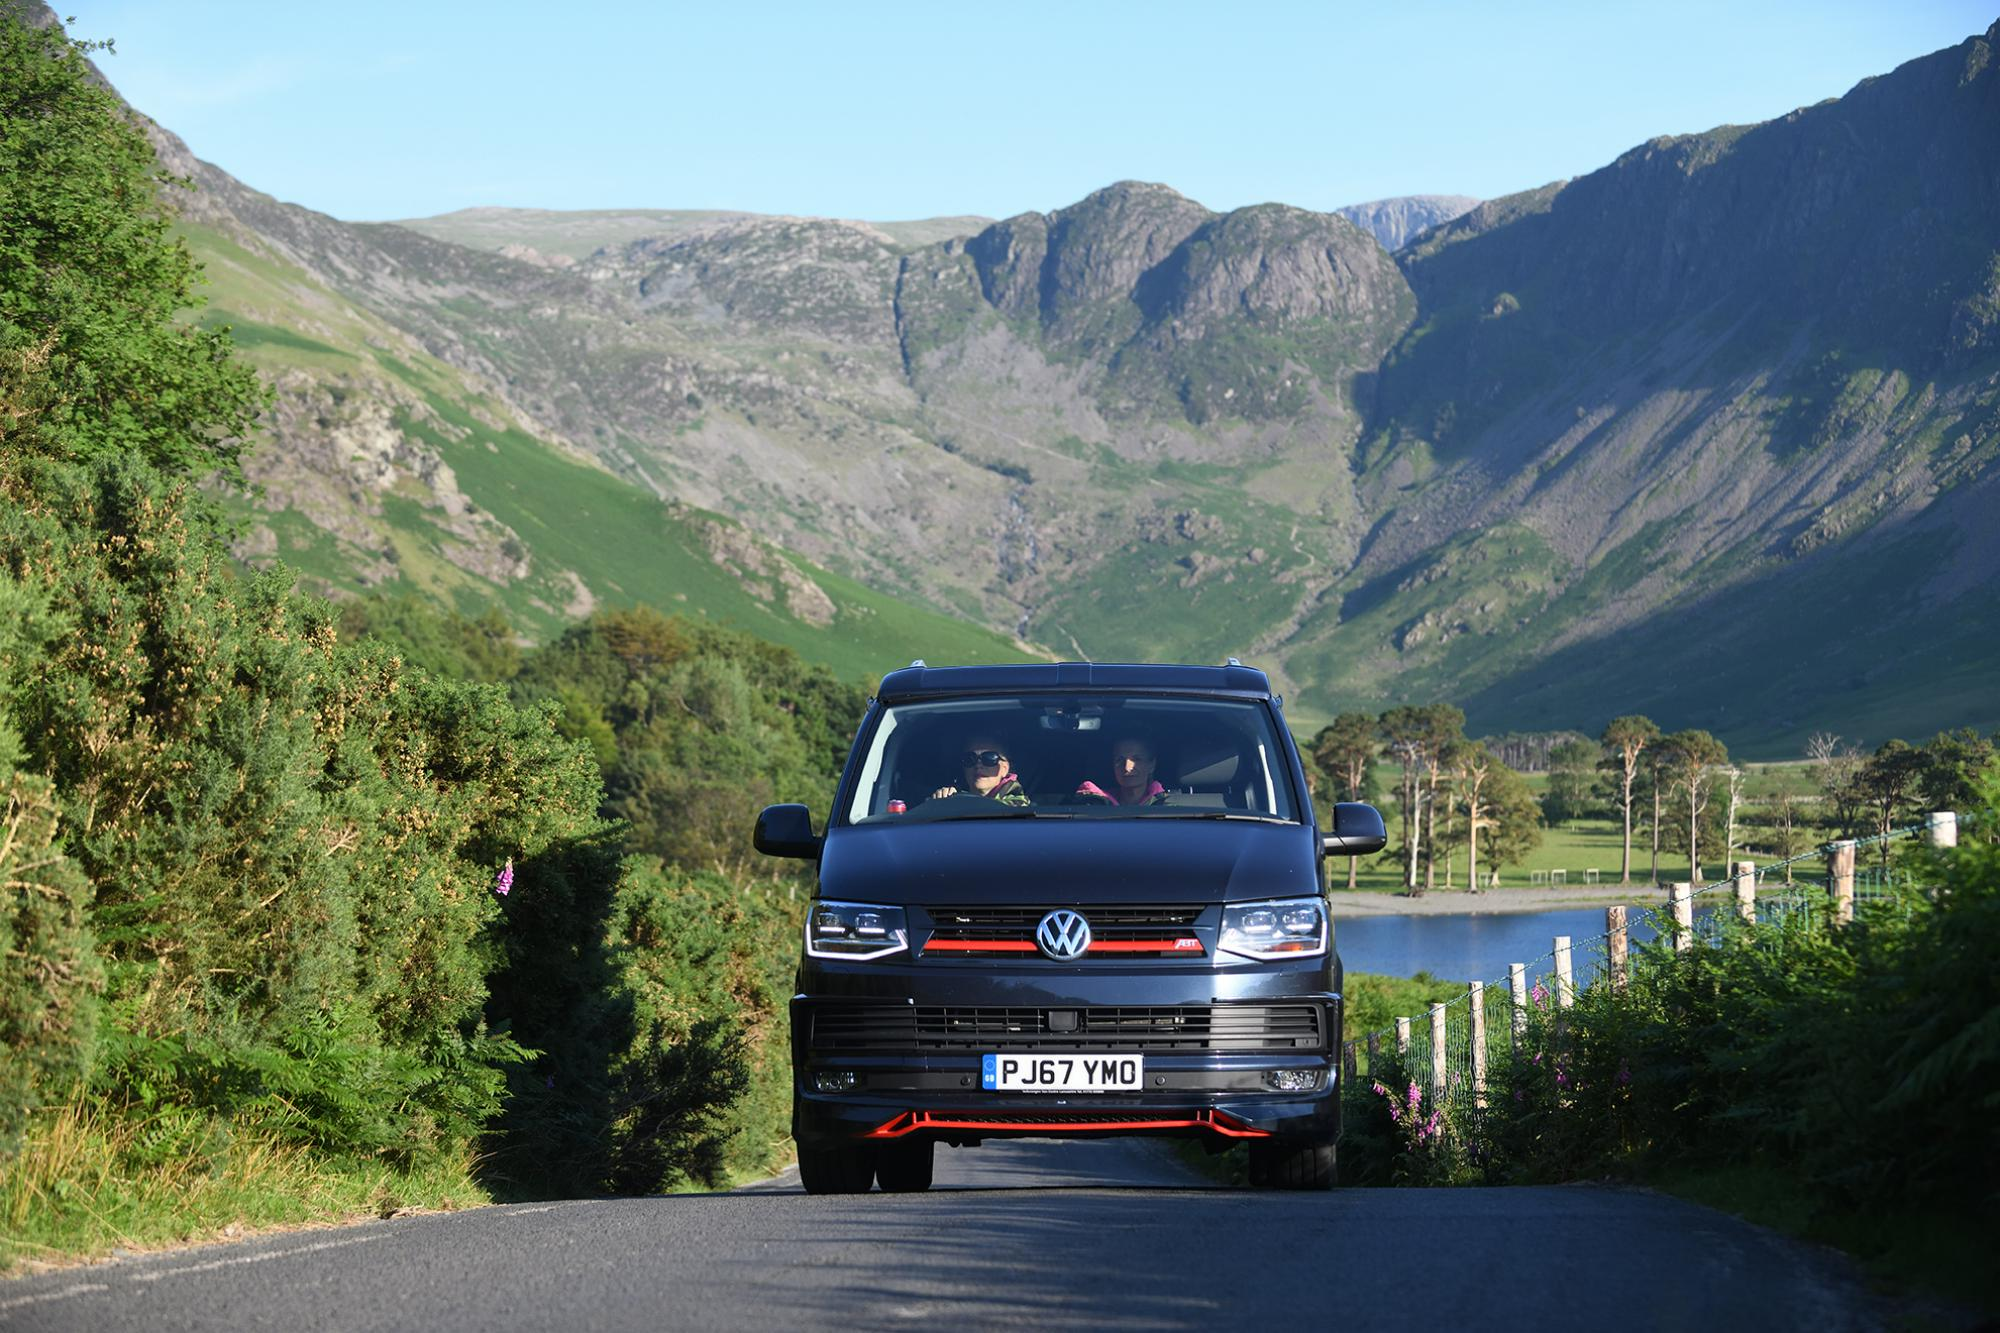 Campervan Hire in North West England | Motorhome Renta in the North West